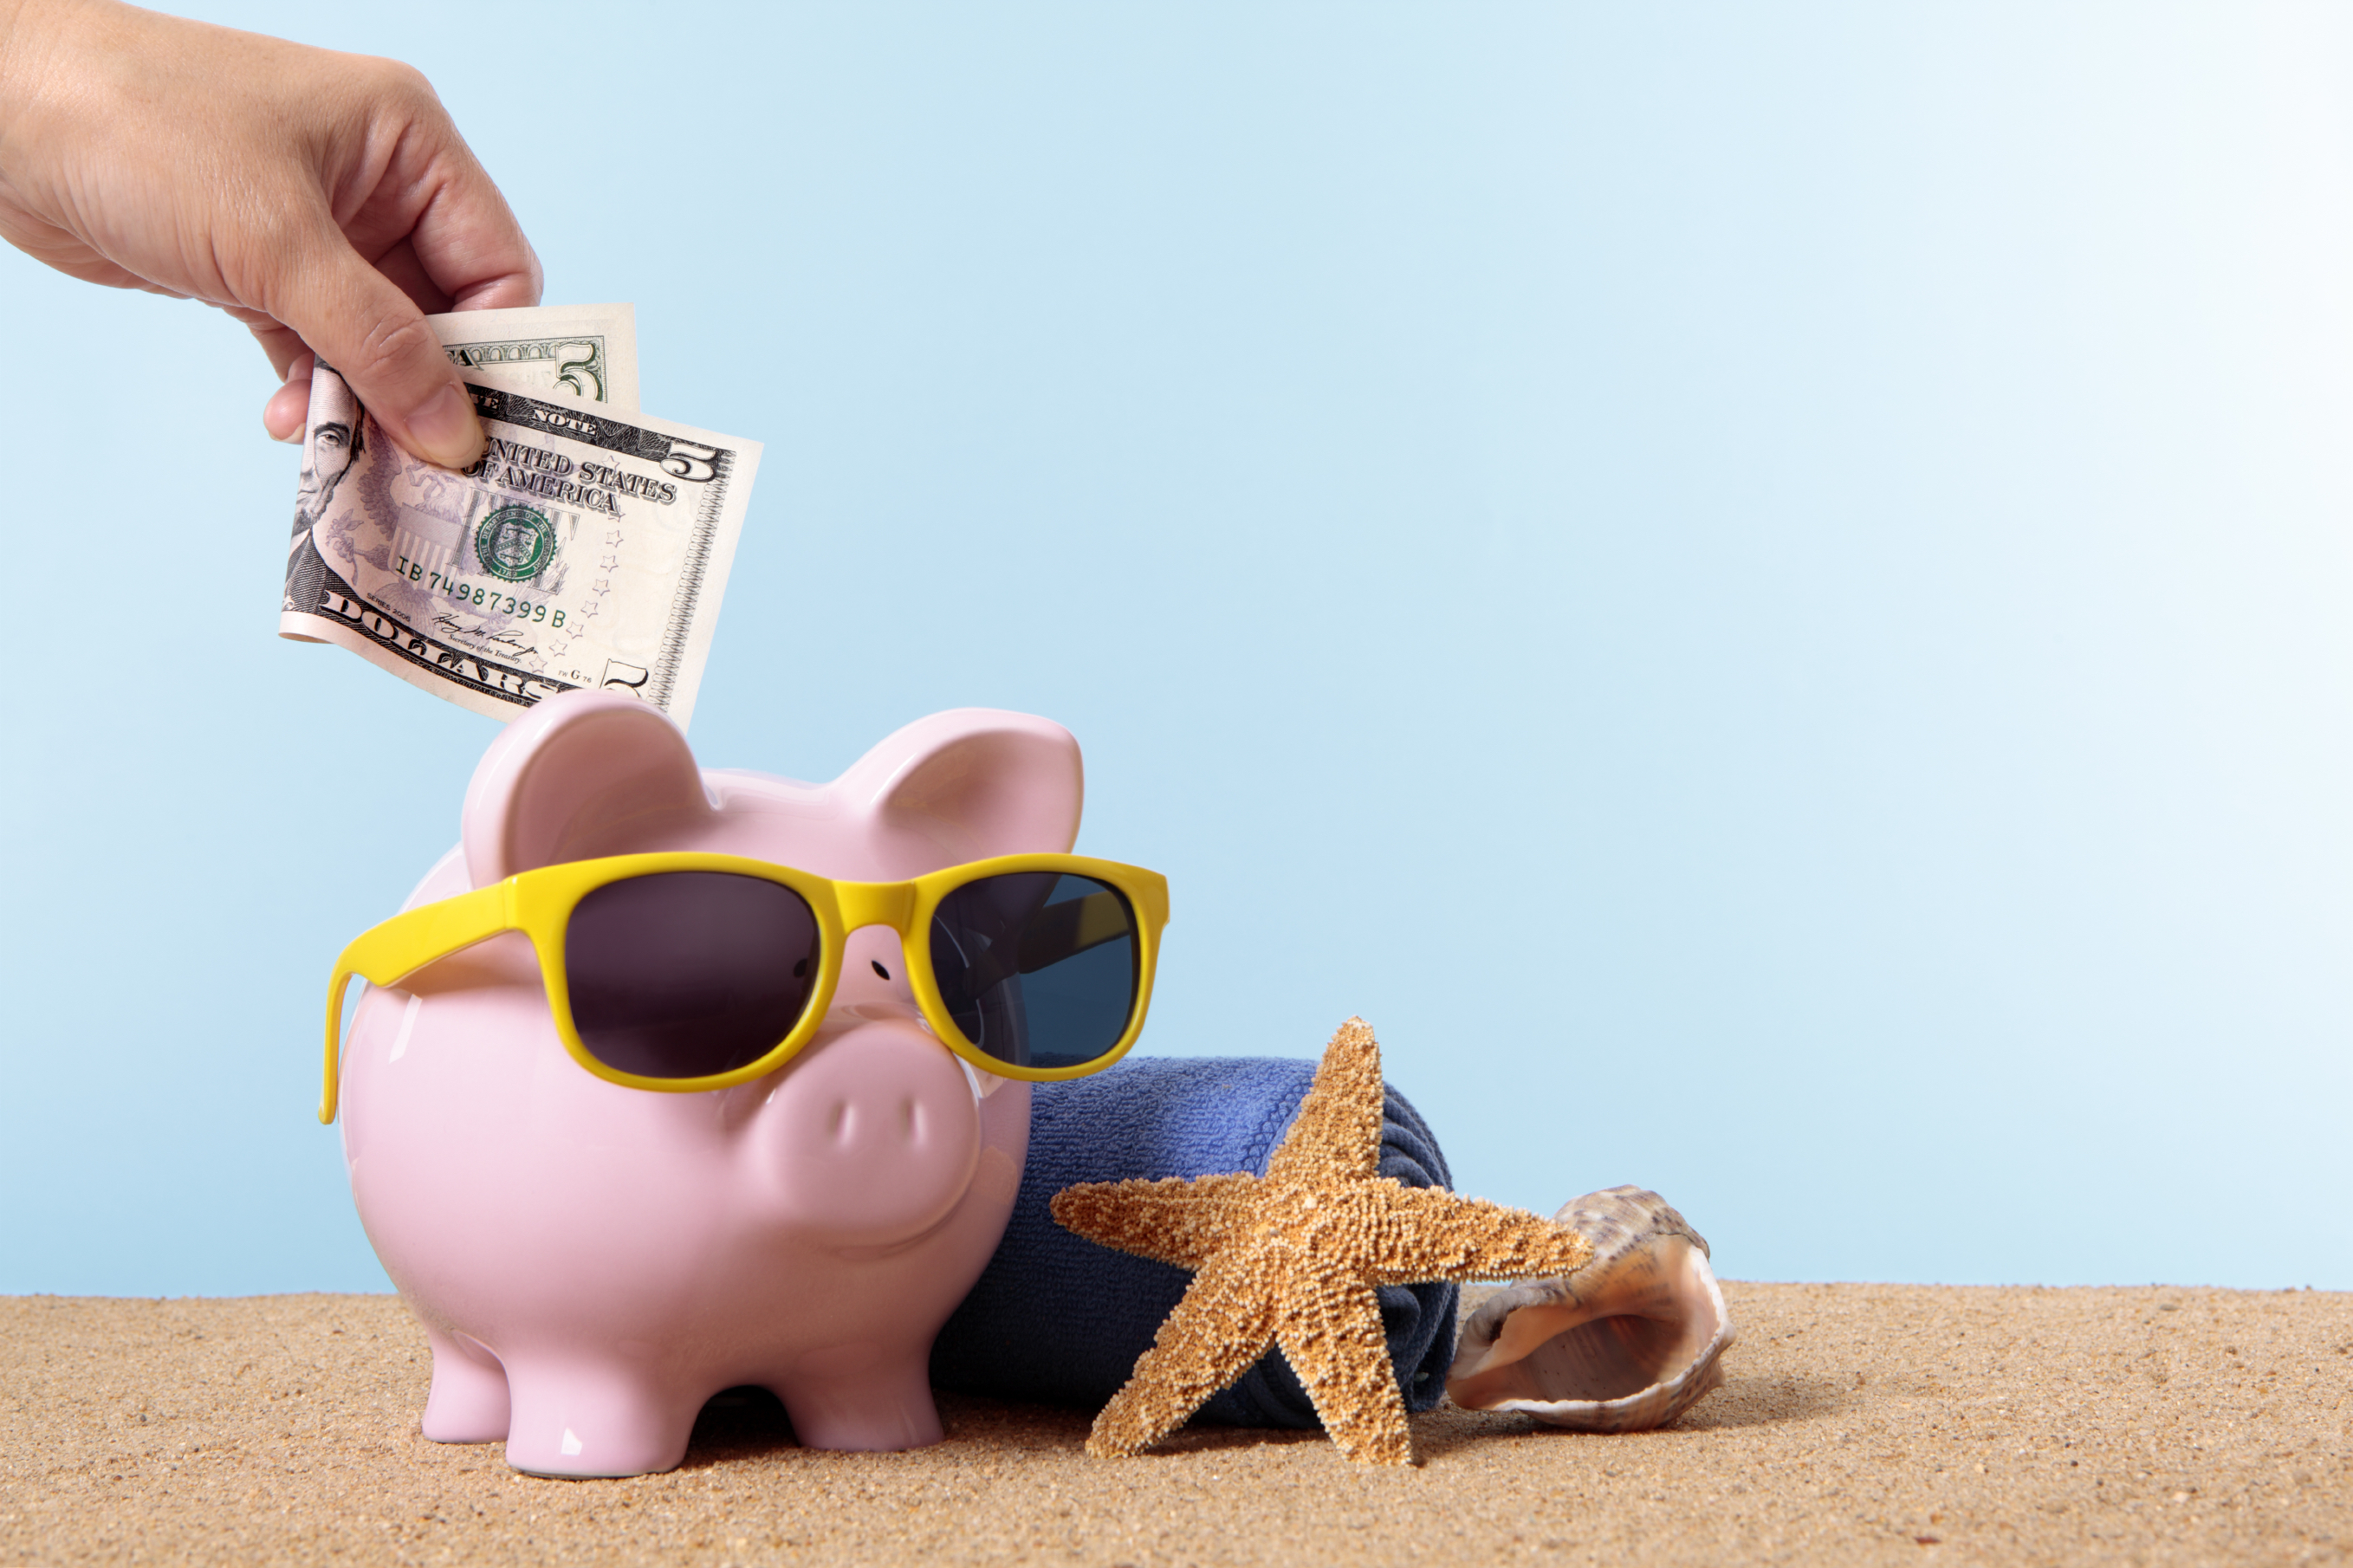 Saving money becomes more of a challenge as summer starts to creep up on us, with pink piggy bank and sunglasses. Studio shot with plain blue background. Sharp focus on the five dollar bill. Space for copy. Warm color and directional lighting are intentional.